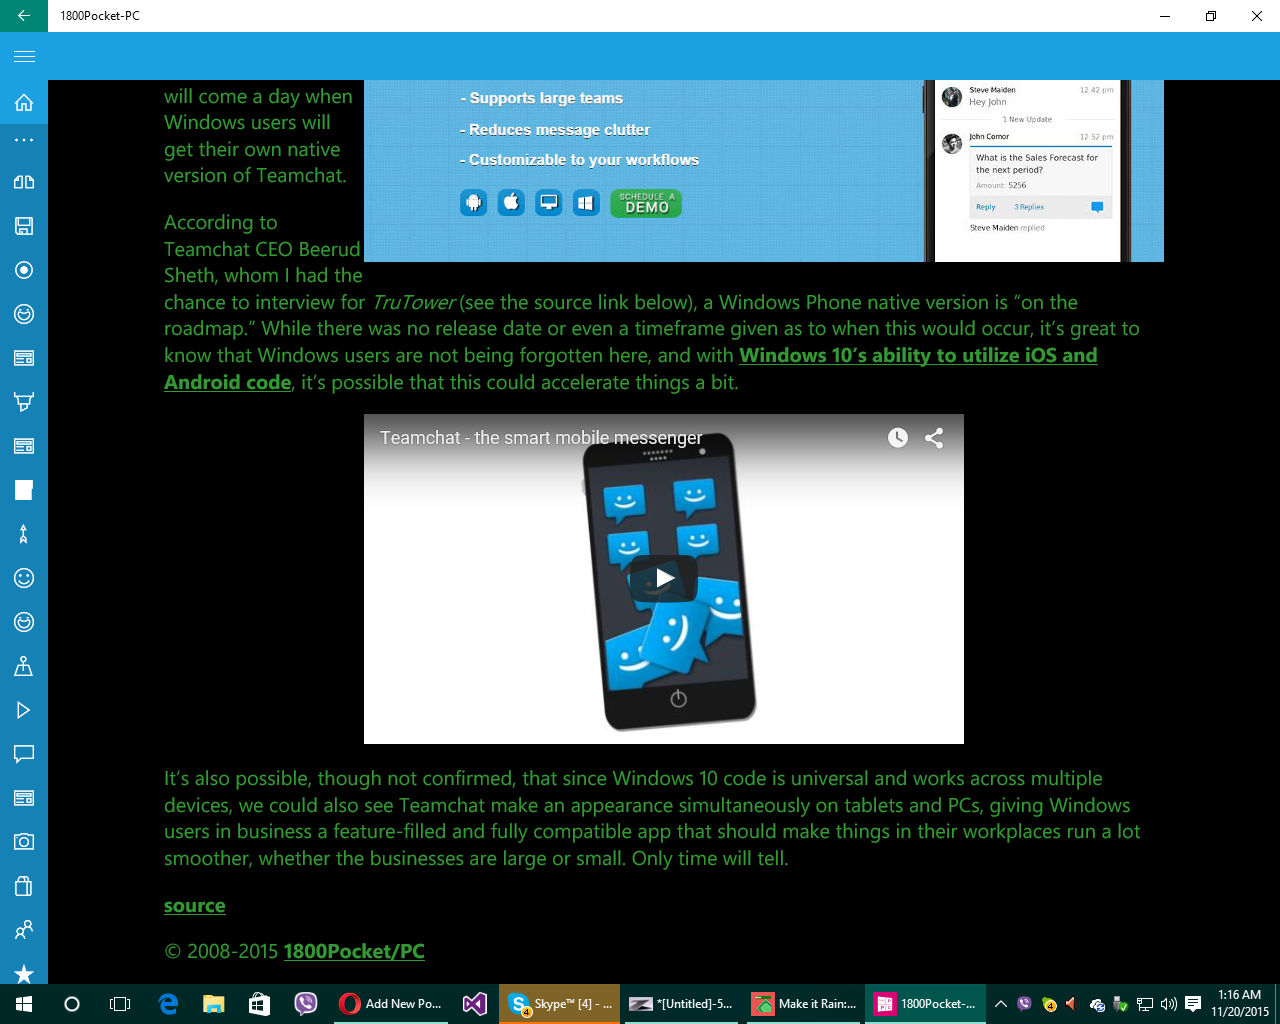 1800PPC, Windows 10 Mobile news and updates, Windows insider updates